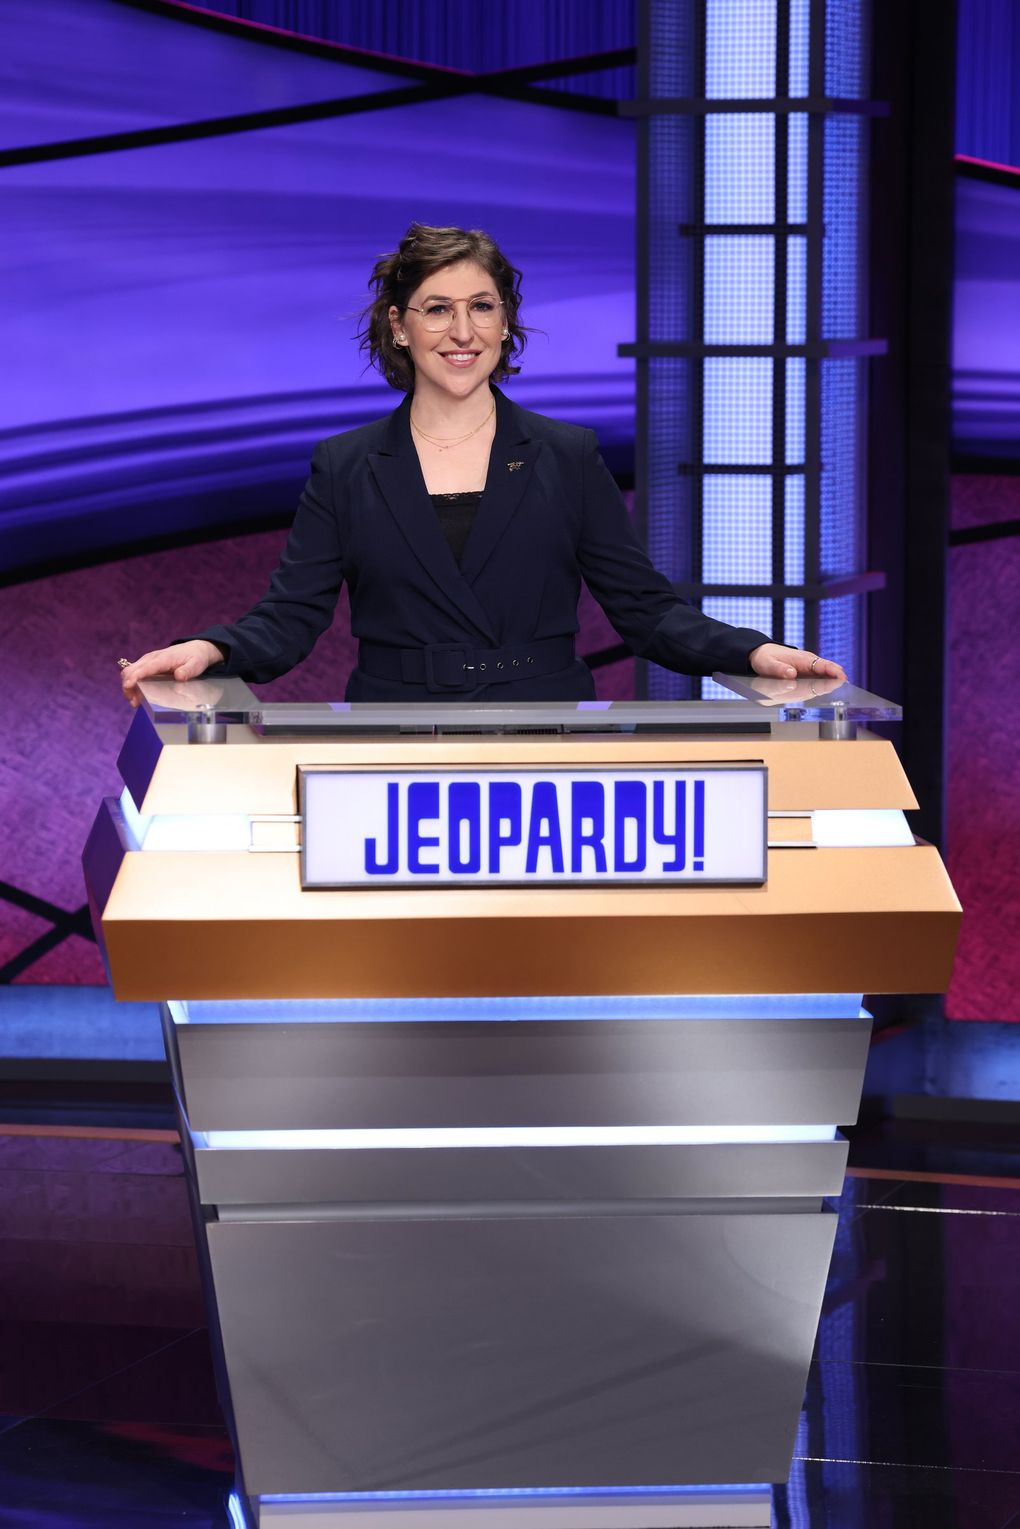 """Mayim Bialik originally got what amounts in the eyes of many fans to a weird consolation prize when Mike Richards was announced as """"Jeopardy!'s"""" main host. Now that he's out of the picture, she should get her shot at the big job. (Courtesy of Jeopardy Productions)"""